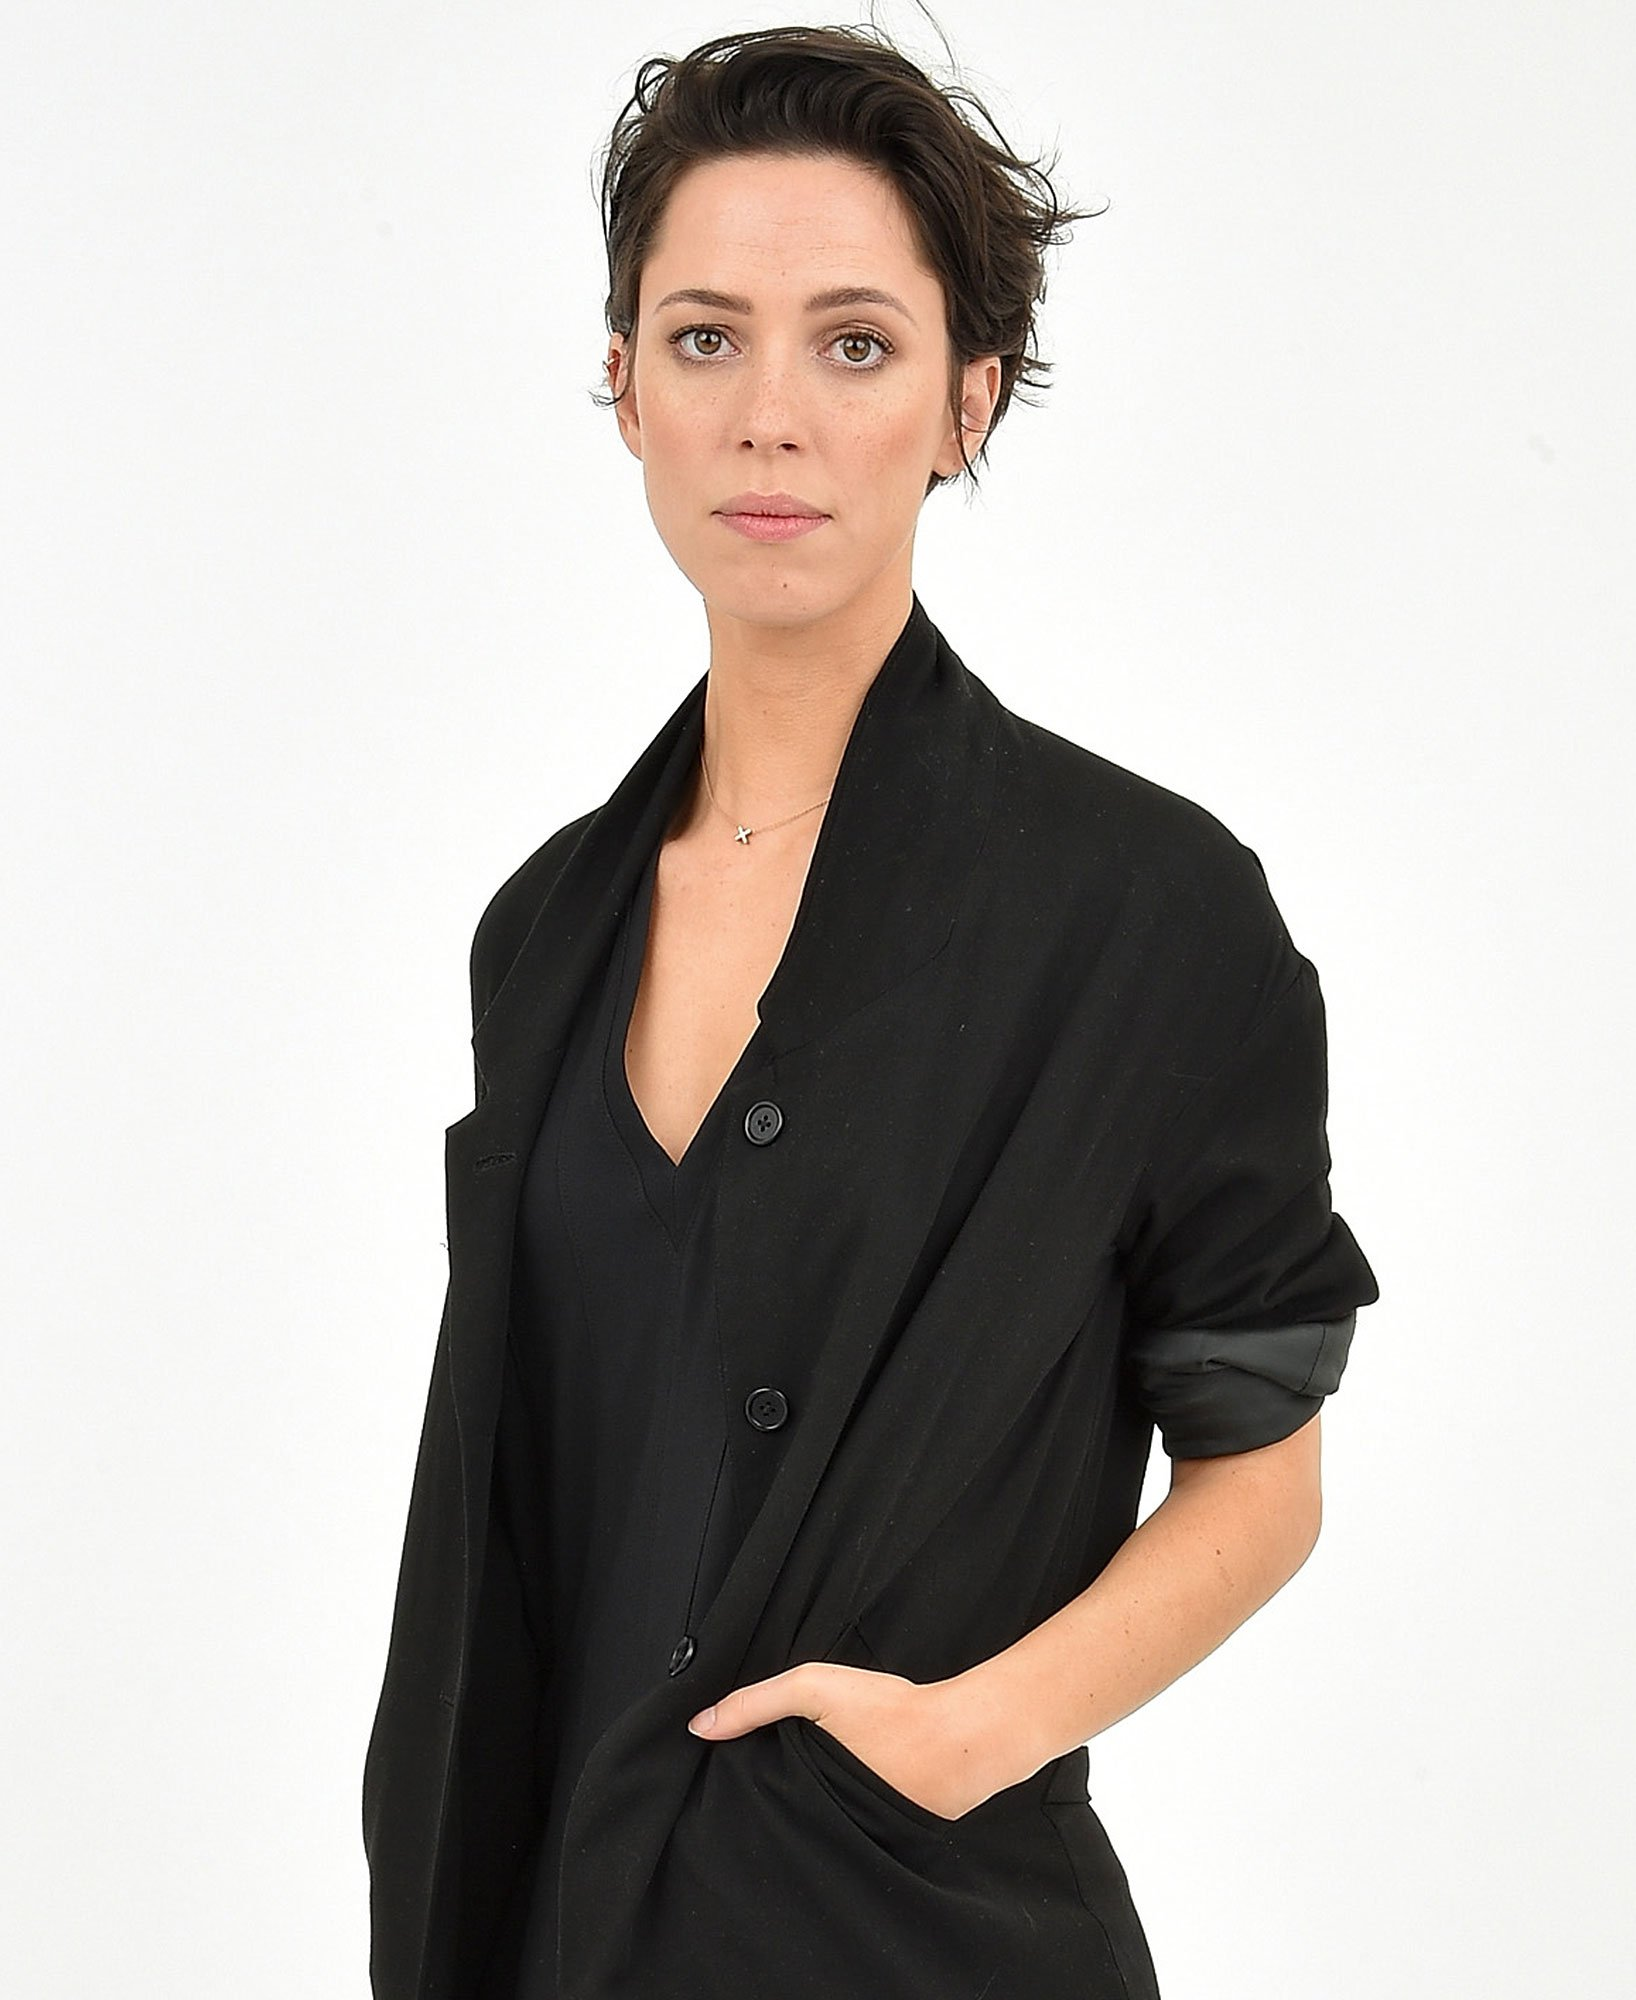 Rebecca Hall donates wages from Woody Allen movie to Time's Up